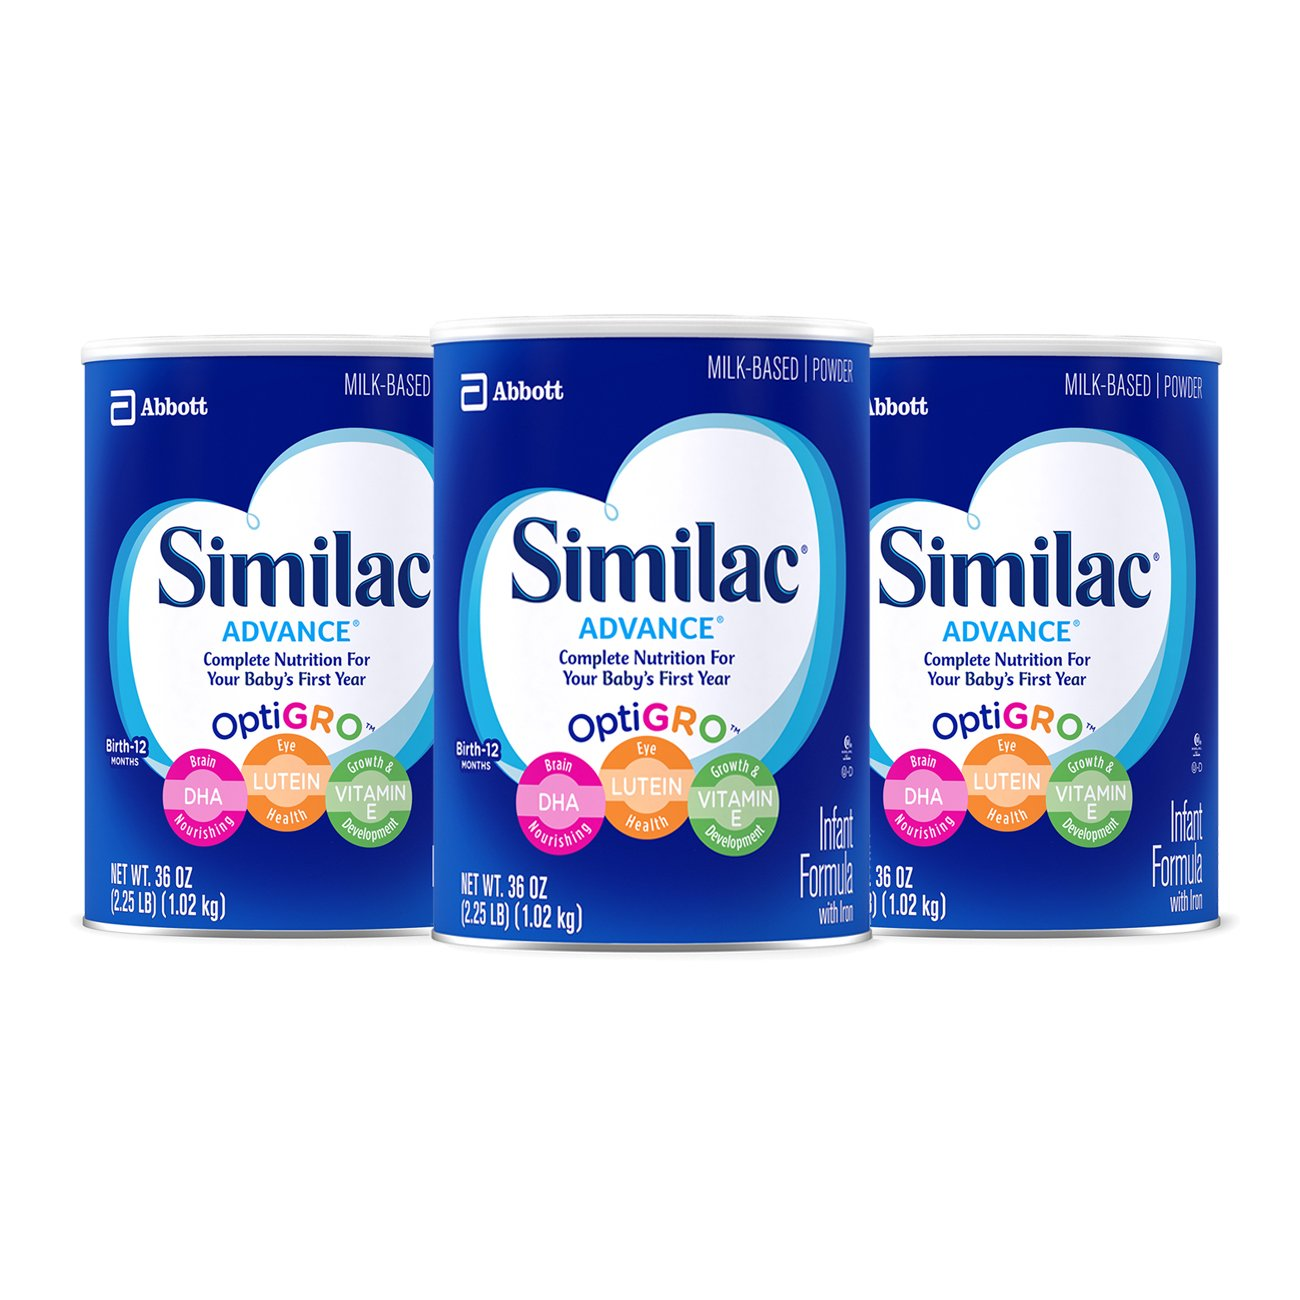 Similac Advance Infant Formula with Iron, Powder, One Month Supply, 36 Ounce (Pack of 3) by Similac (Image #1)